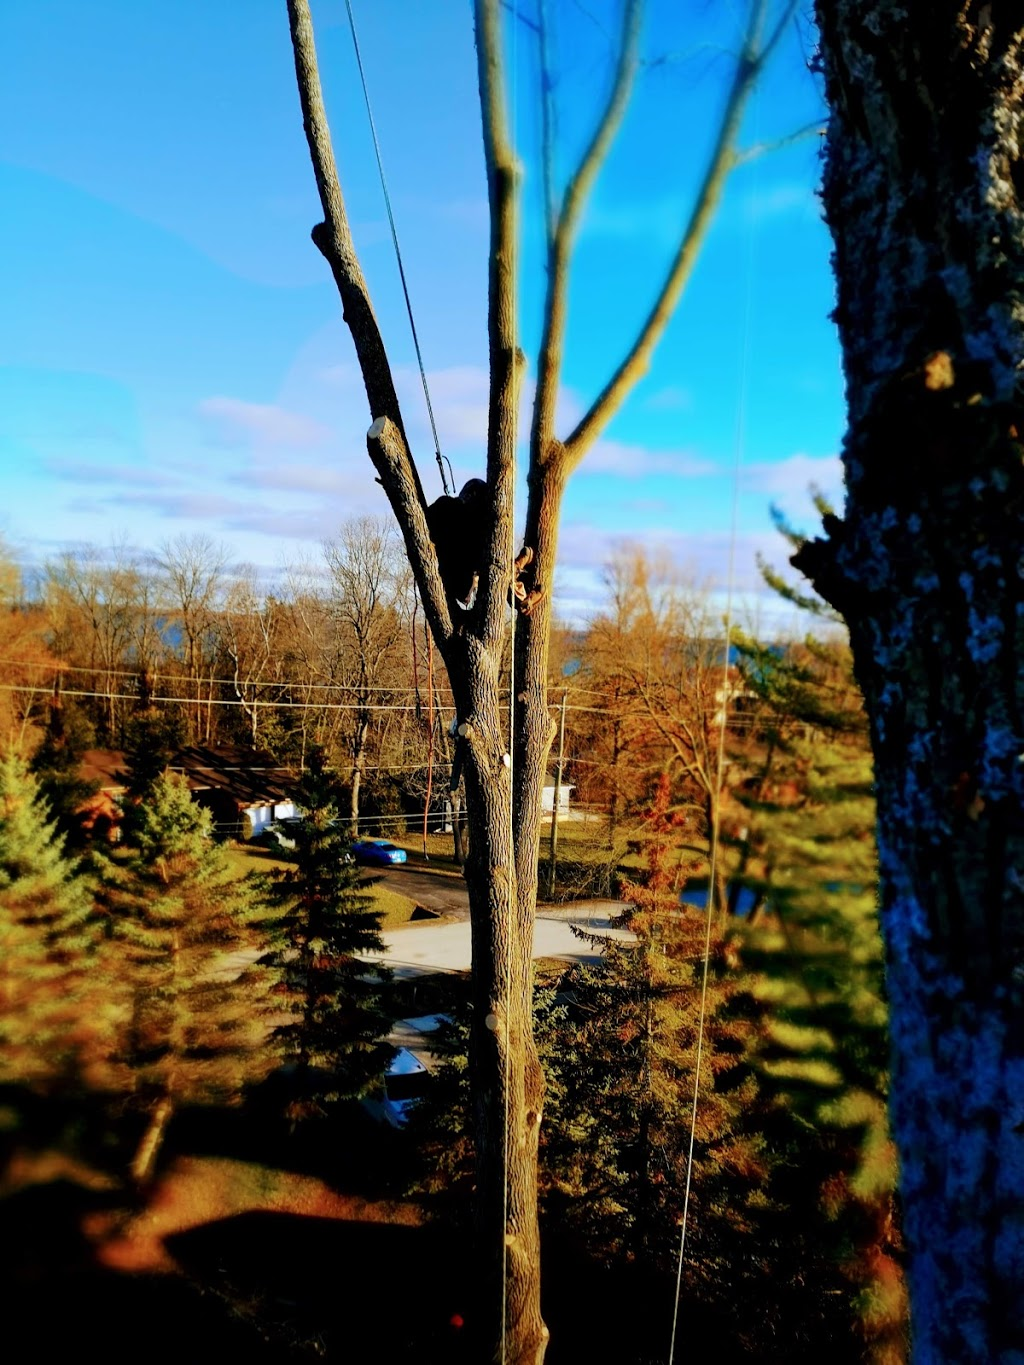 The Great Canadian Tree Service | real estate agency | 37 Peel St, Barrie, ON L4M 3L1, Canada | 7057348733 OR +1 705-734-8733